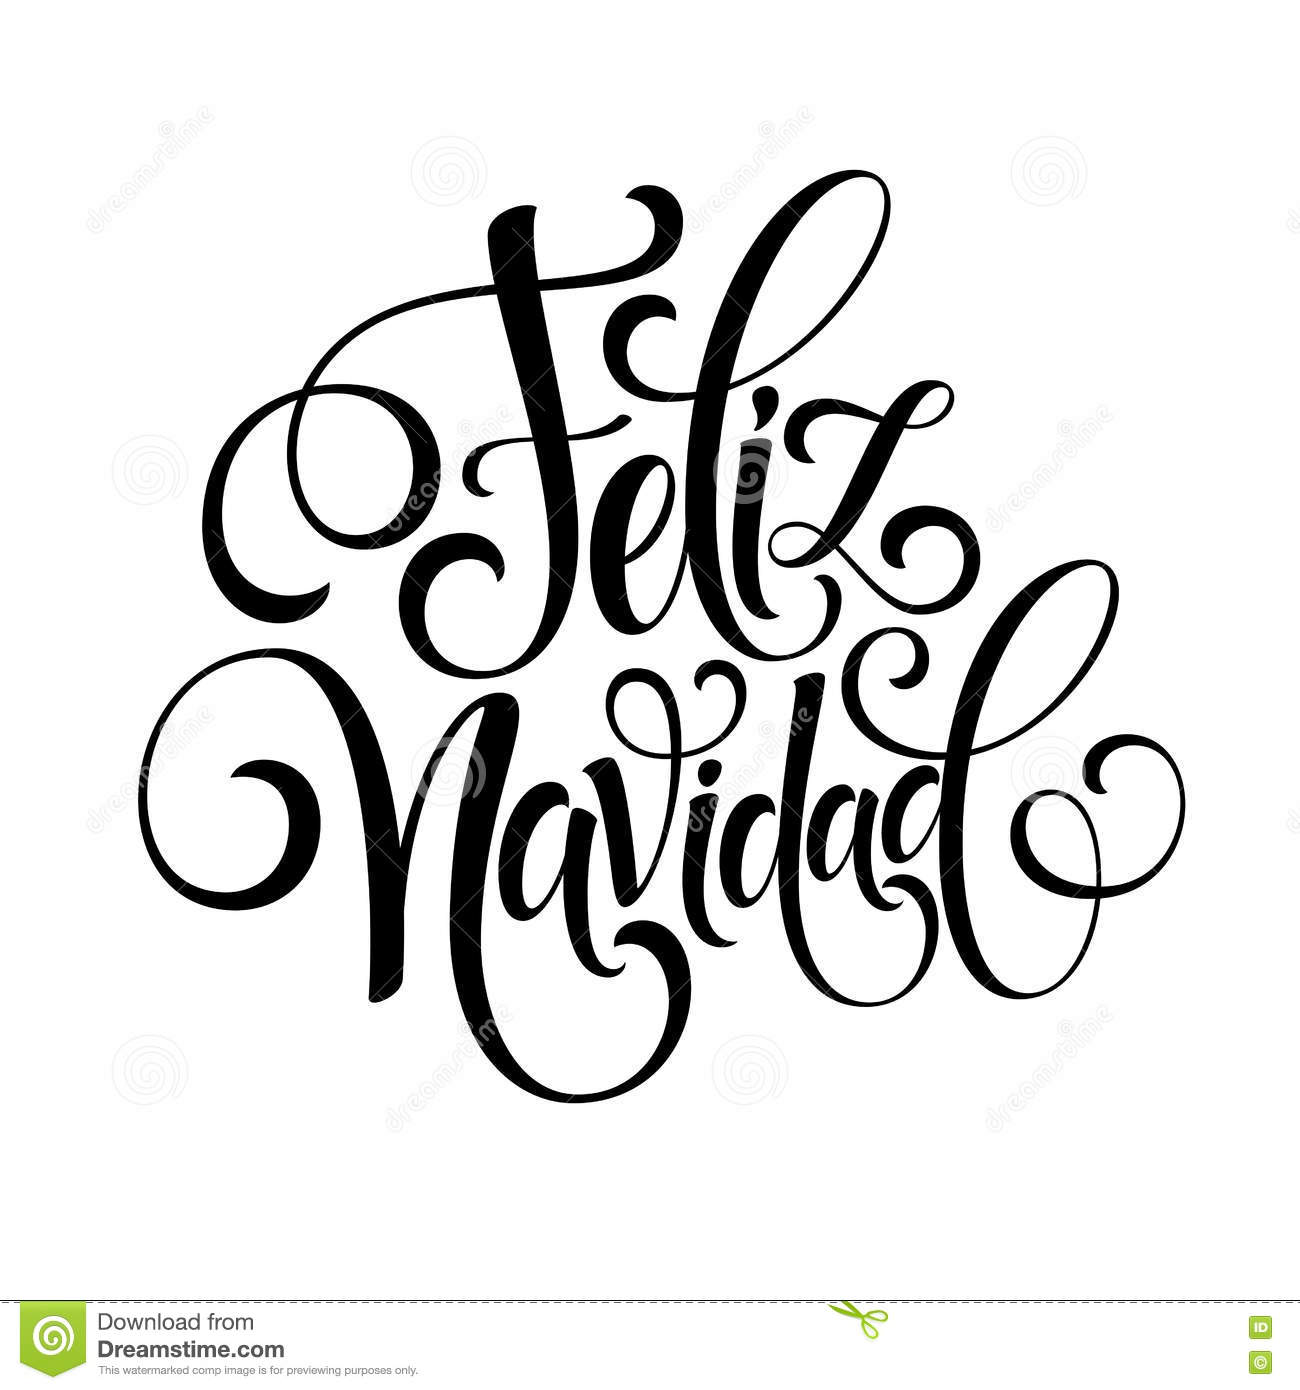 feliz navidad hand lettering decoration text for greeting card design template merry christmas typography label